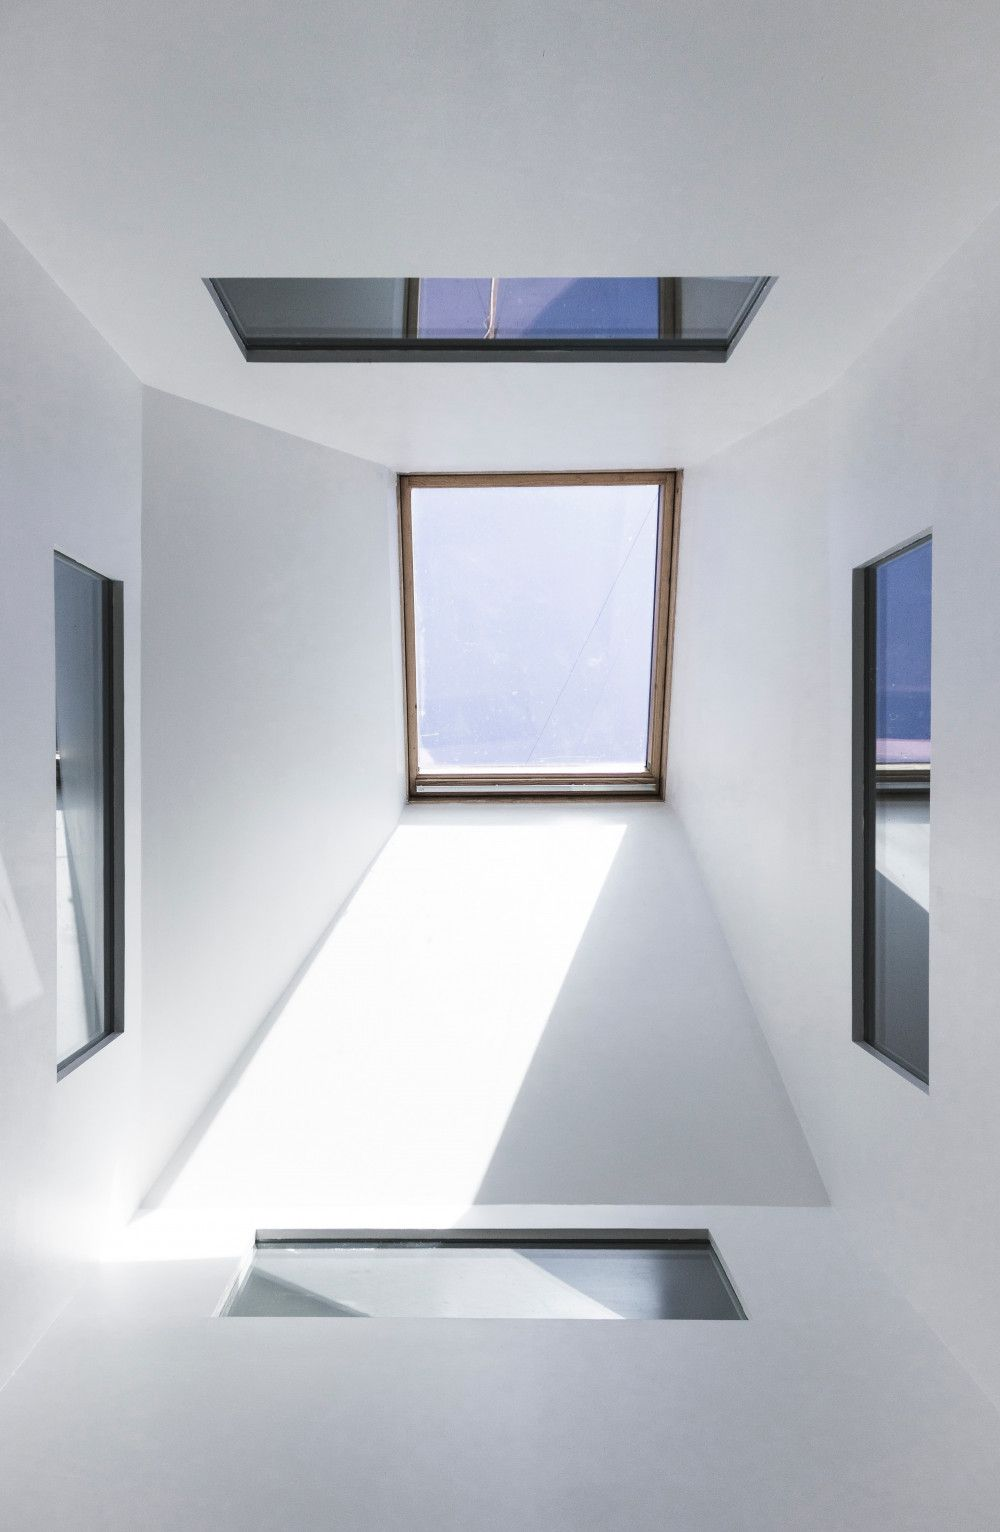 square roof window pictured from directly below